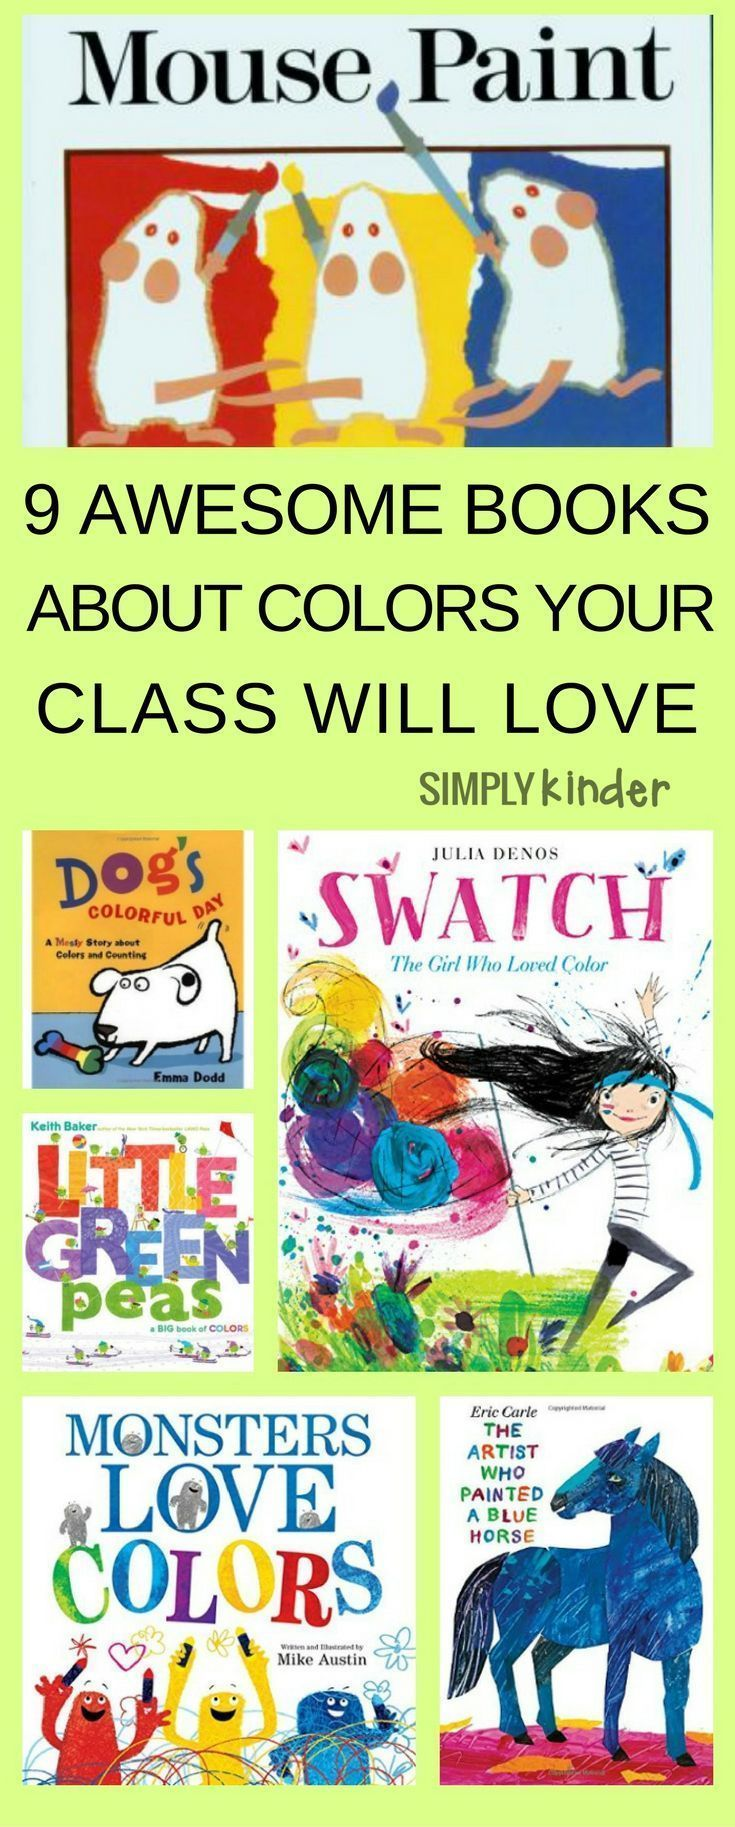 9 Awesome Books About Color Your Class Will Love